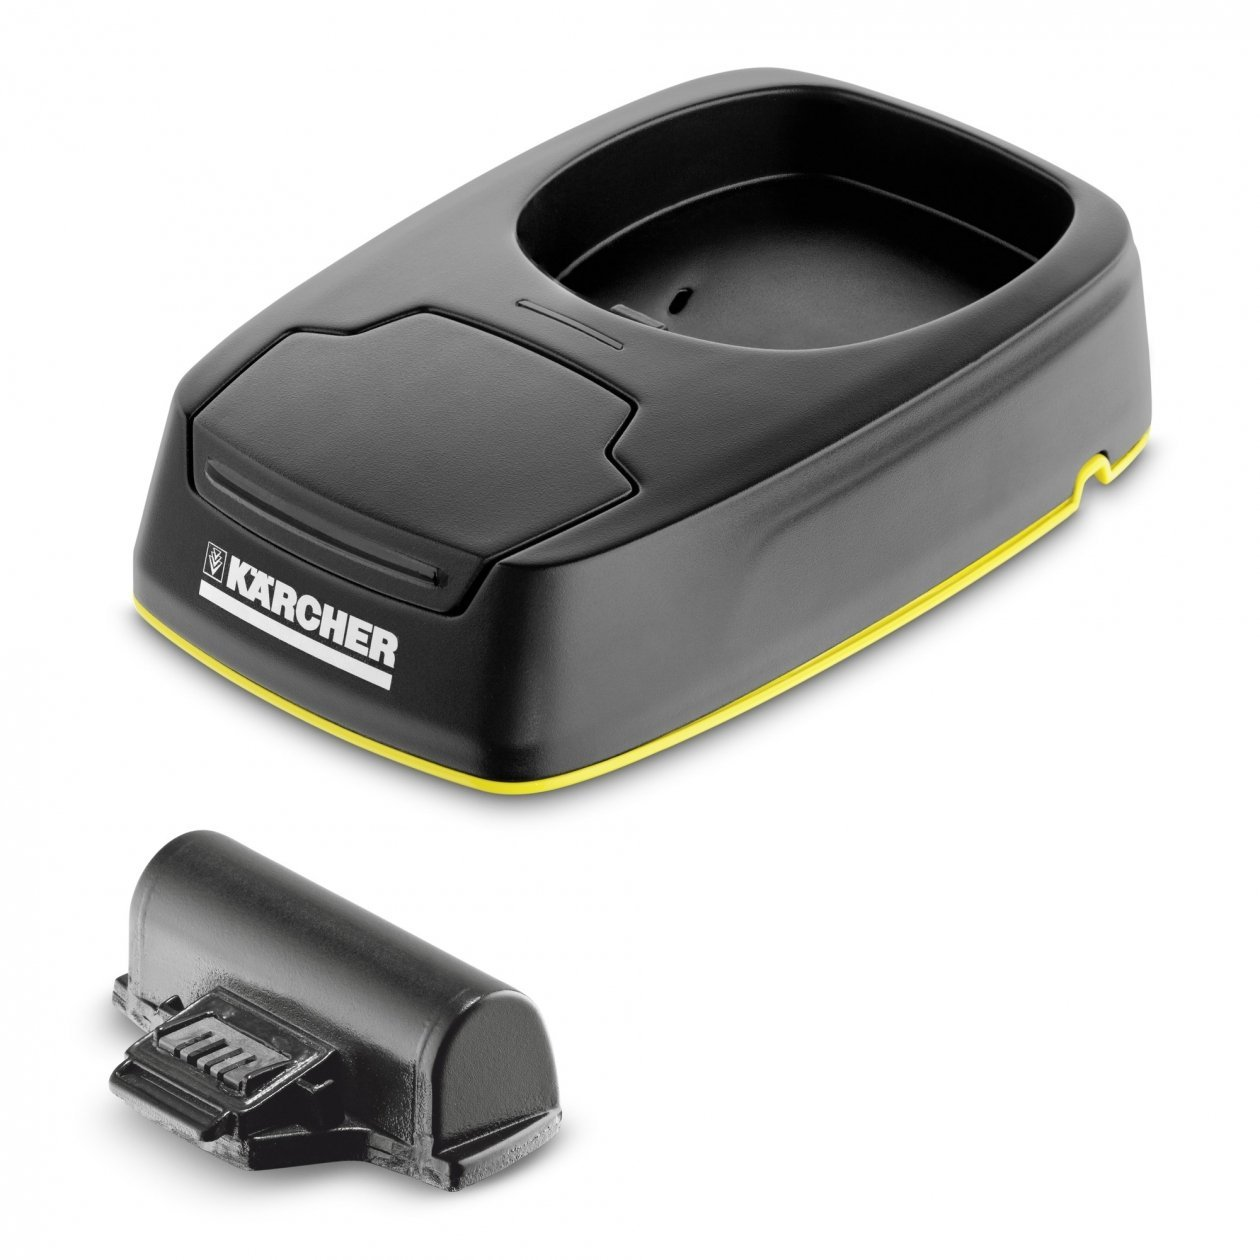 Karcher 2.633-116.0 Charging Station with Rechargeable Battery for WV 5 Plus